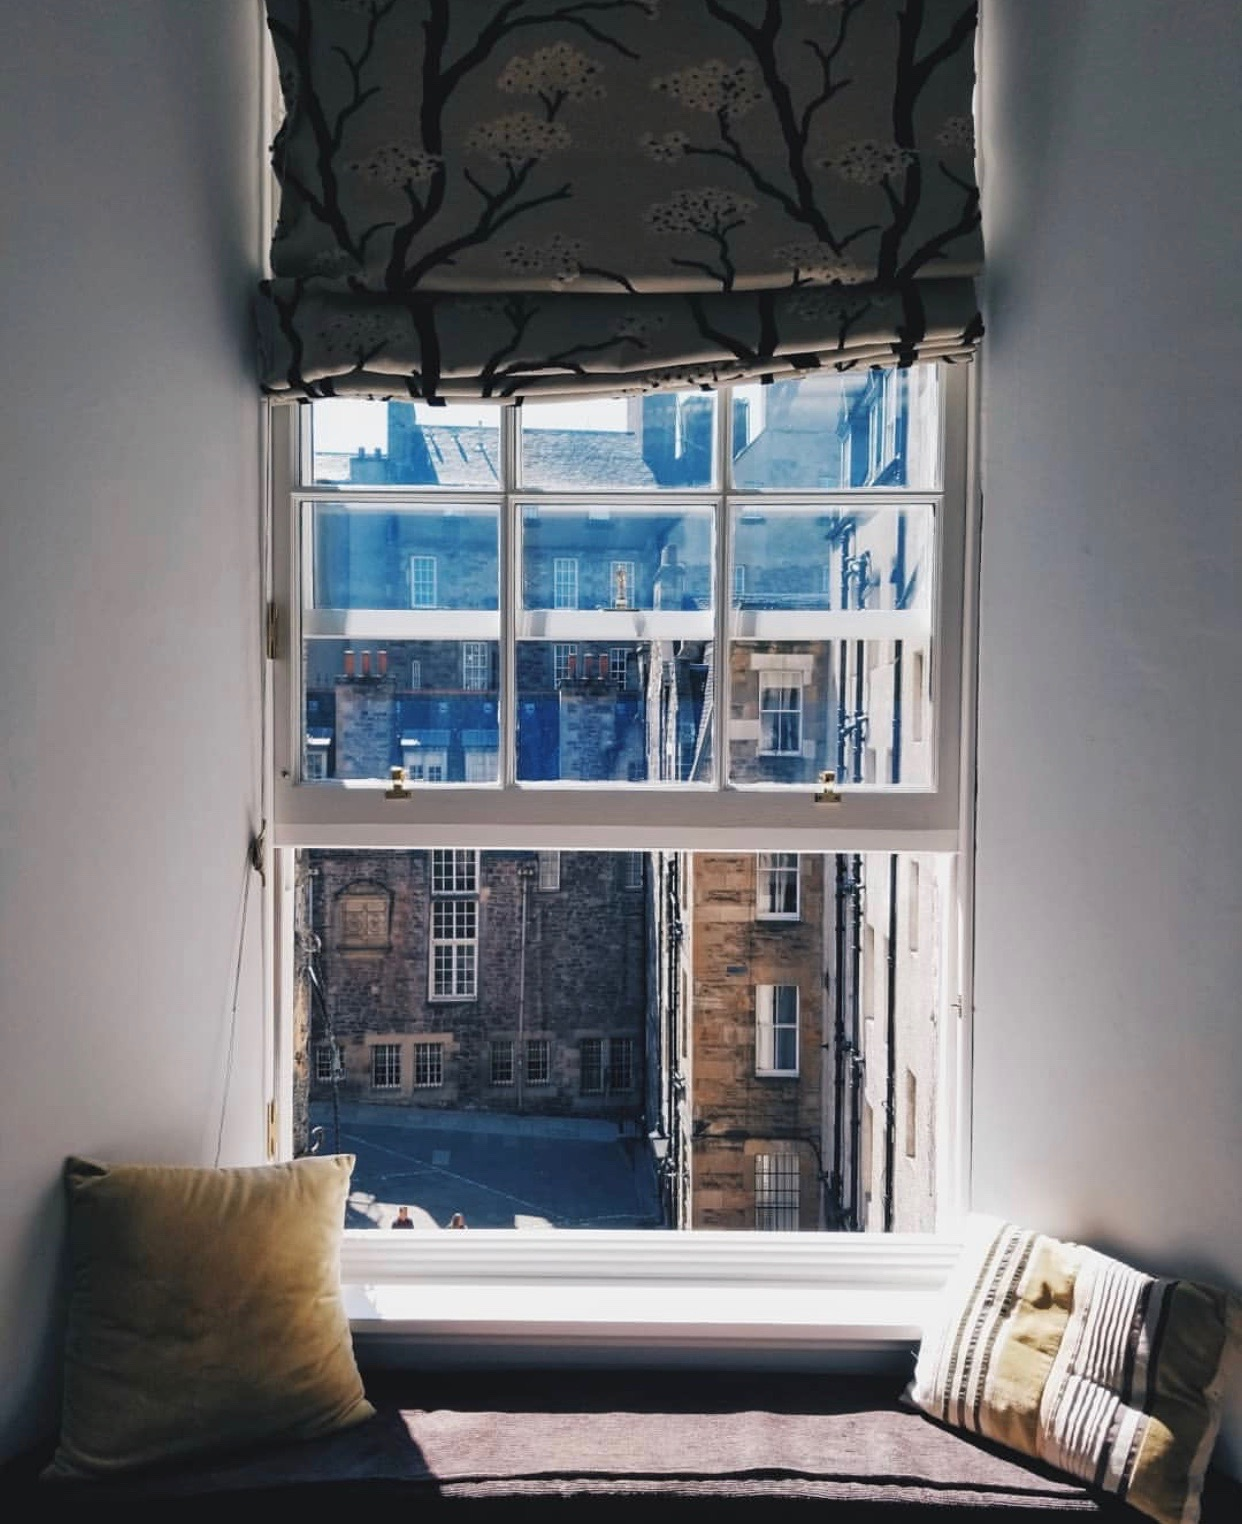 An open window in an Edinburgh flat on a sunny day, with a view into the courtyard and stone buildings across the way.